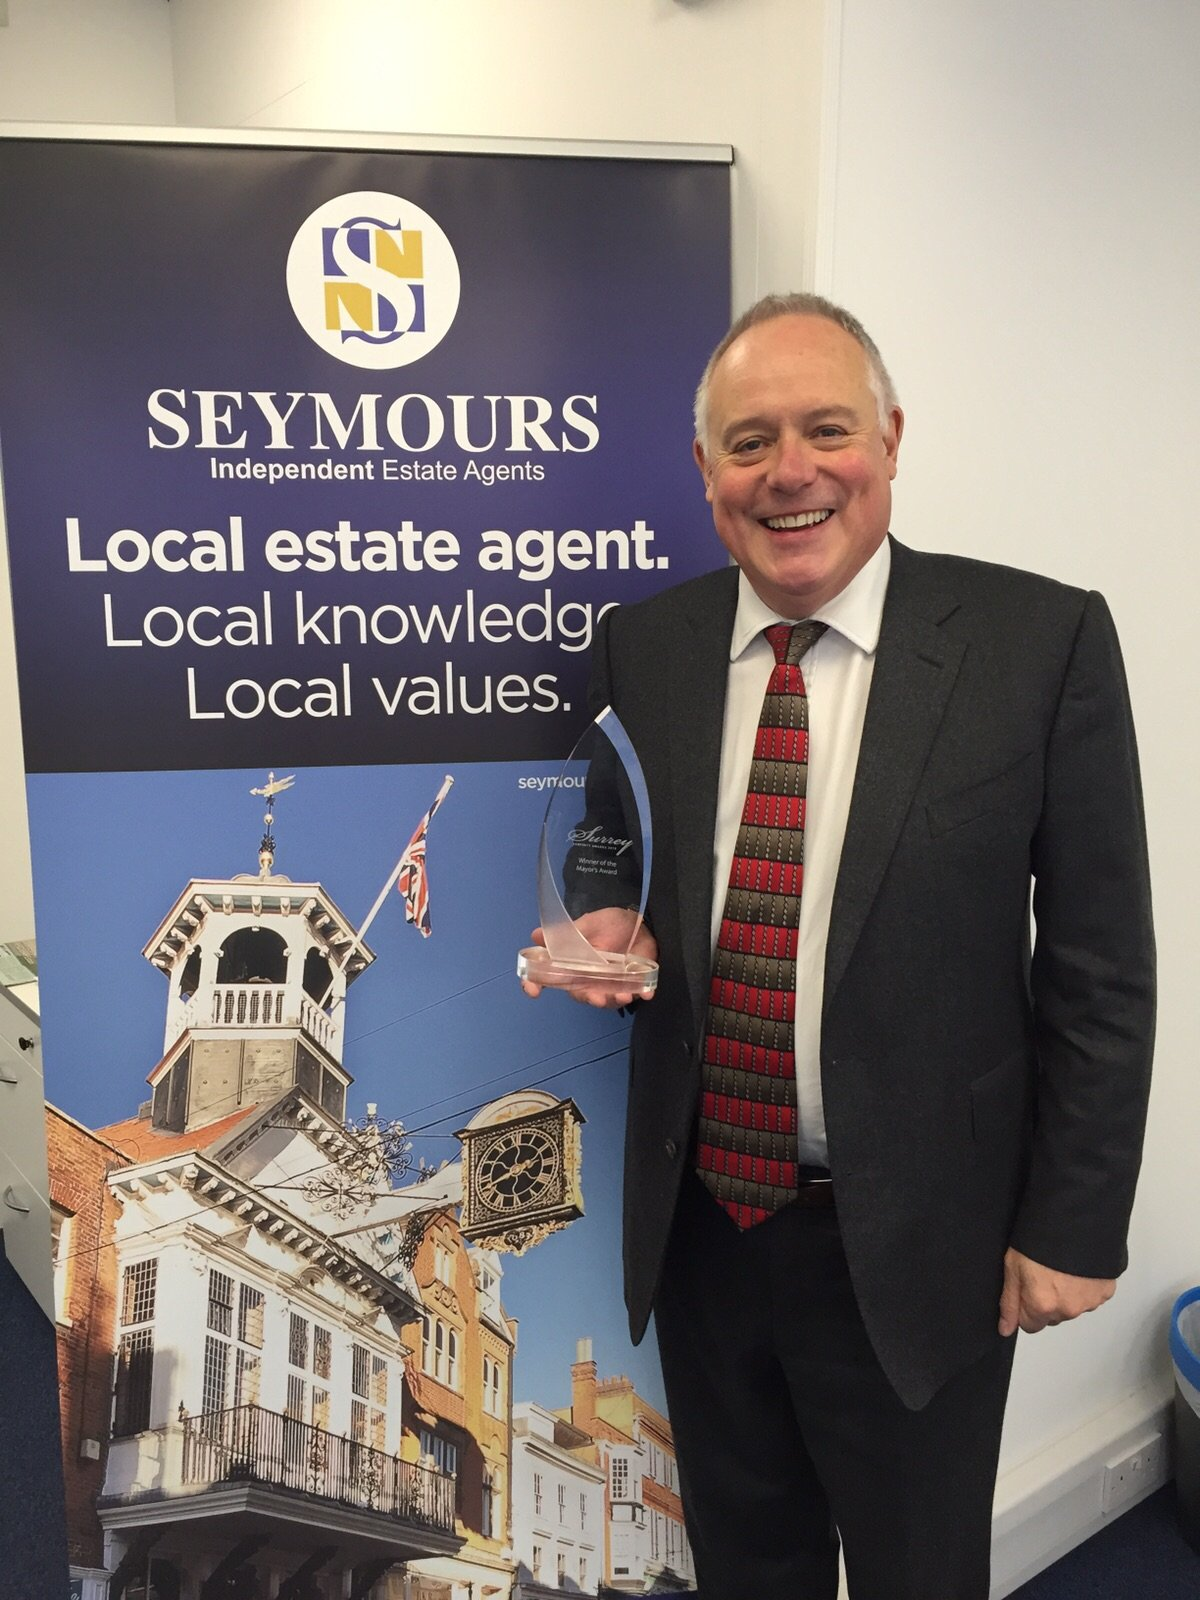 SEYMOURS AWARDED THE MAYOR'S SEAL OF APPROVAL